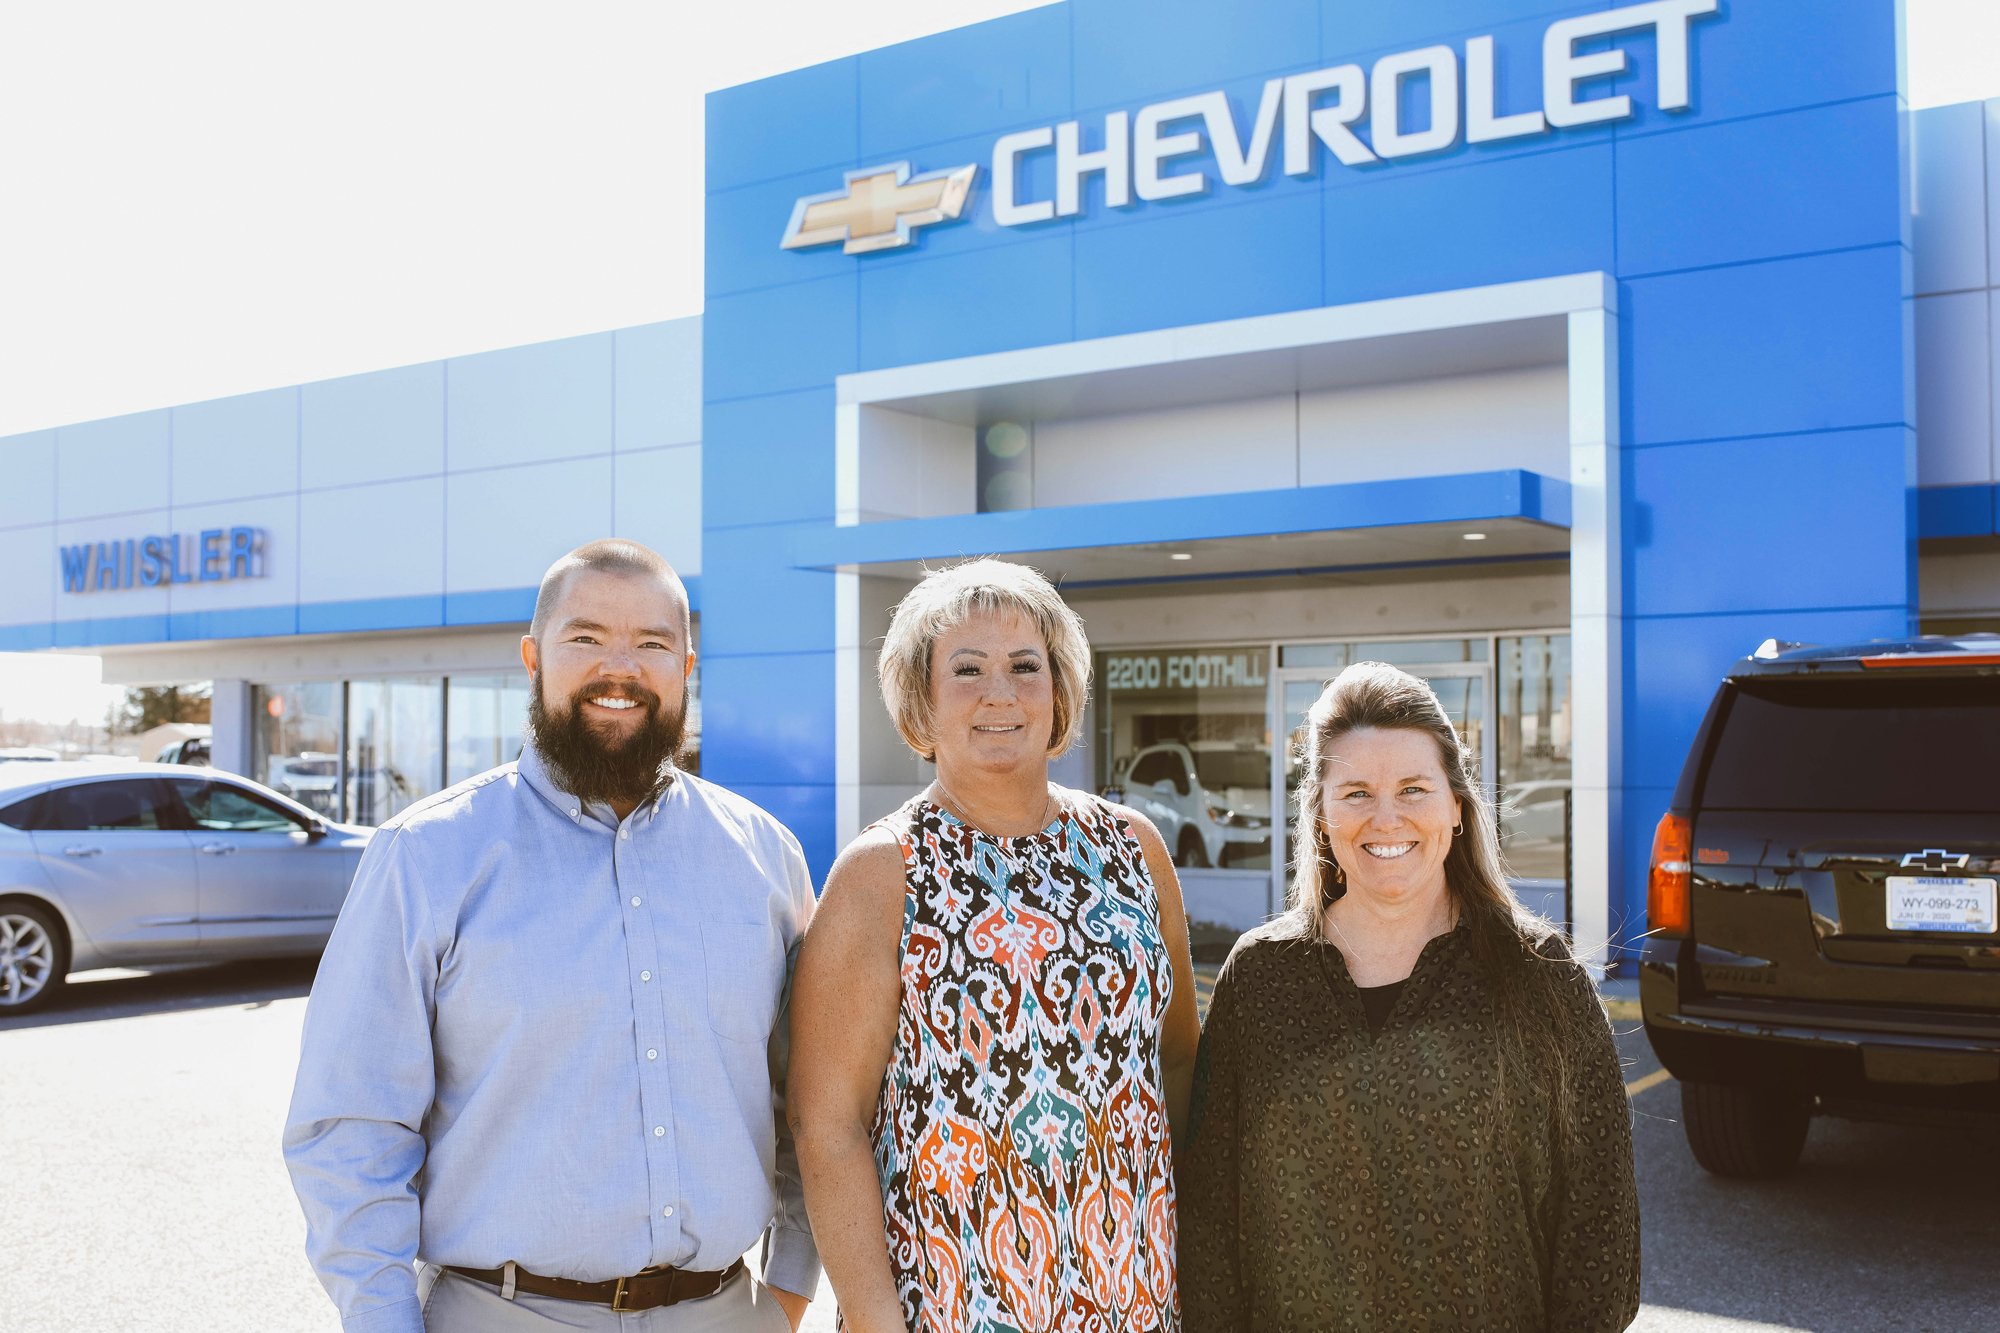 #HOMETOWN HUSTLE: Whisler Chevrolet & Cadillac